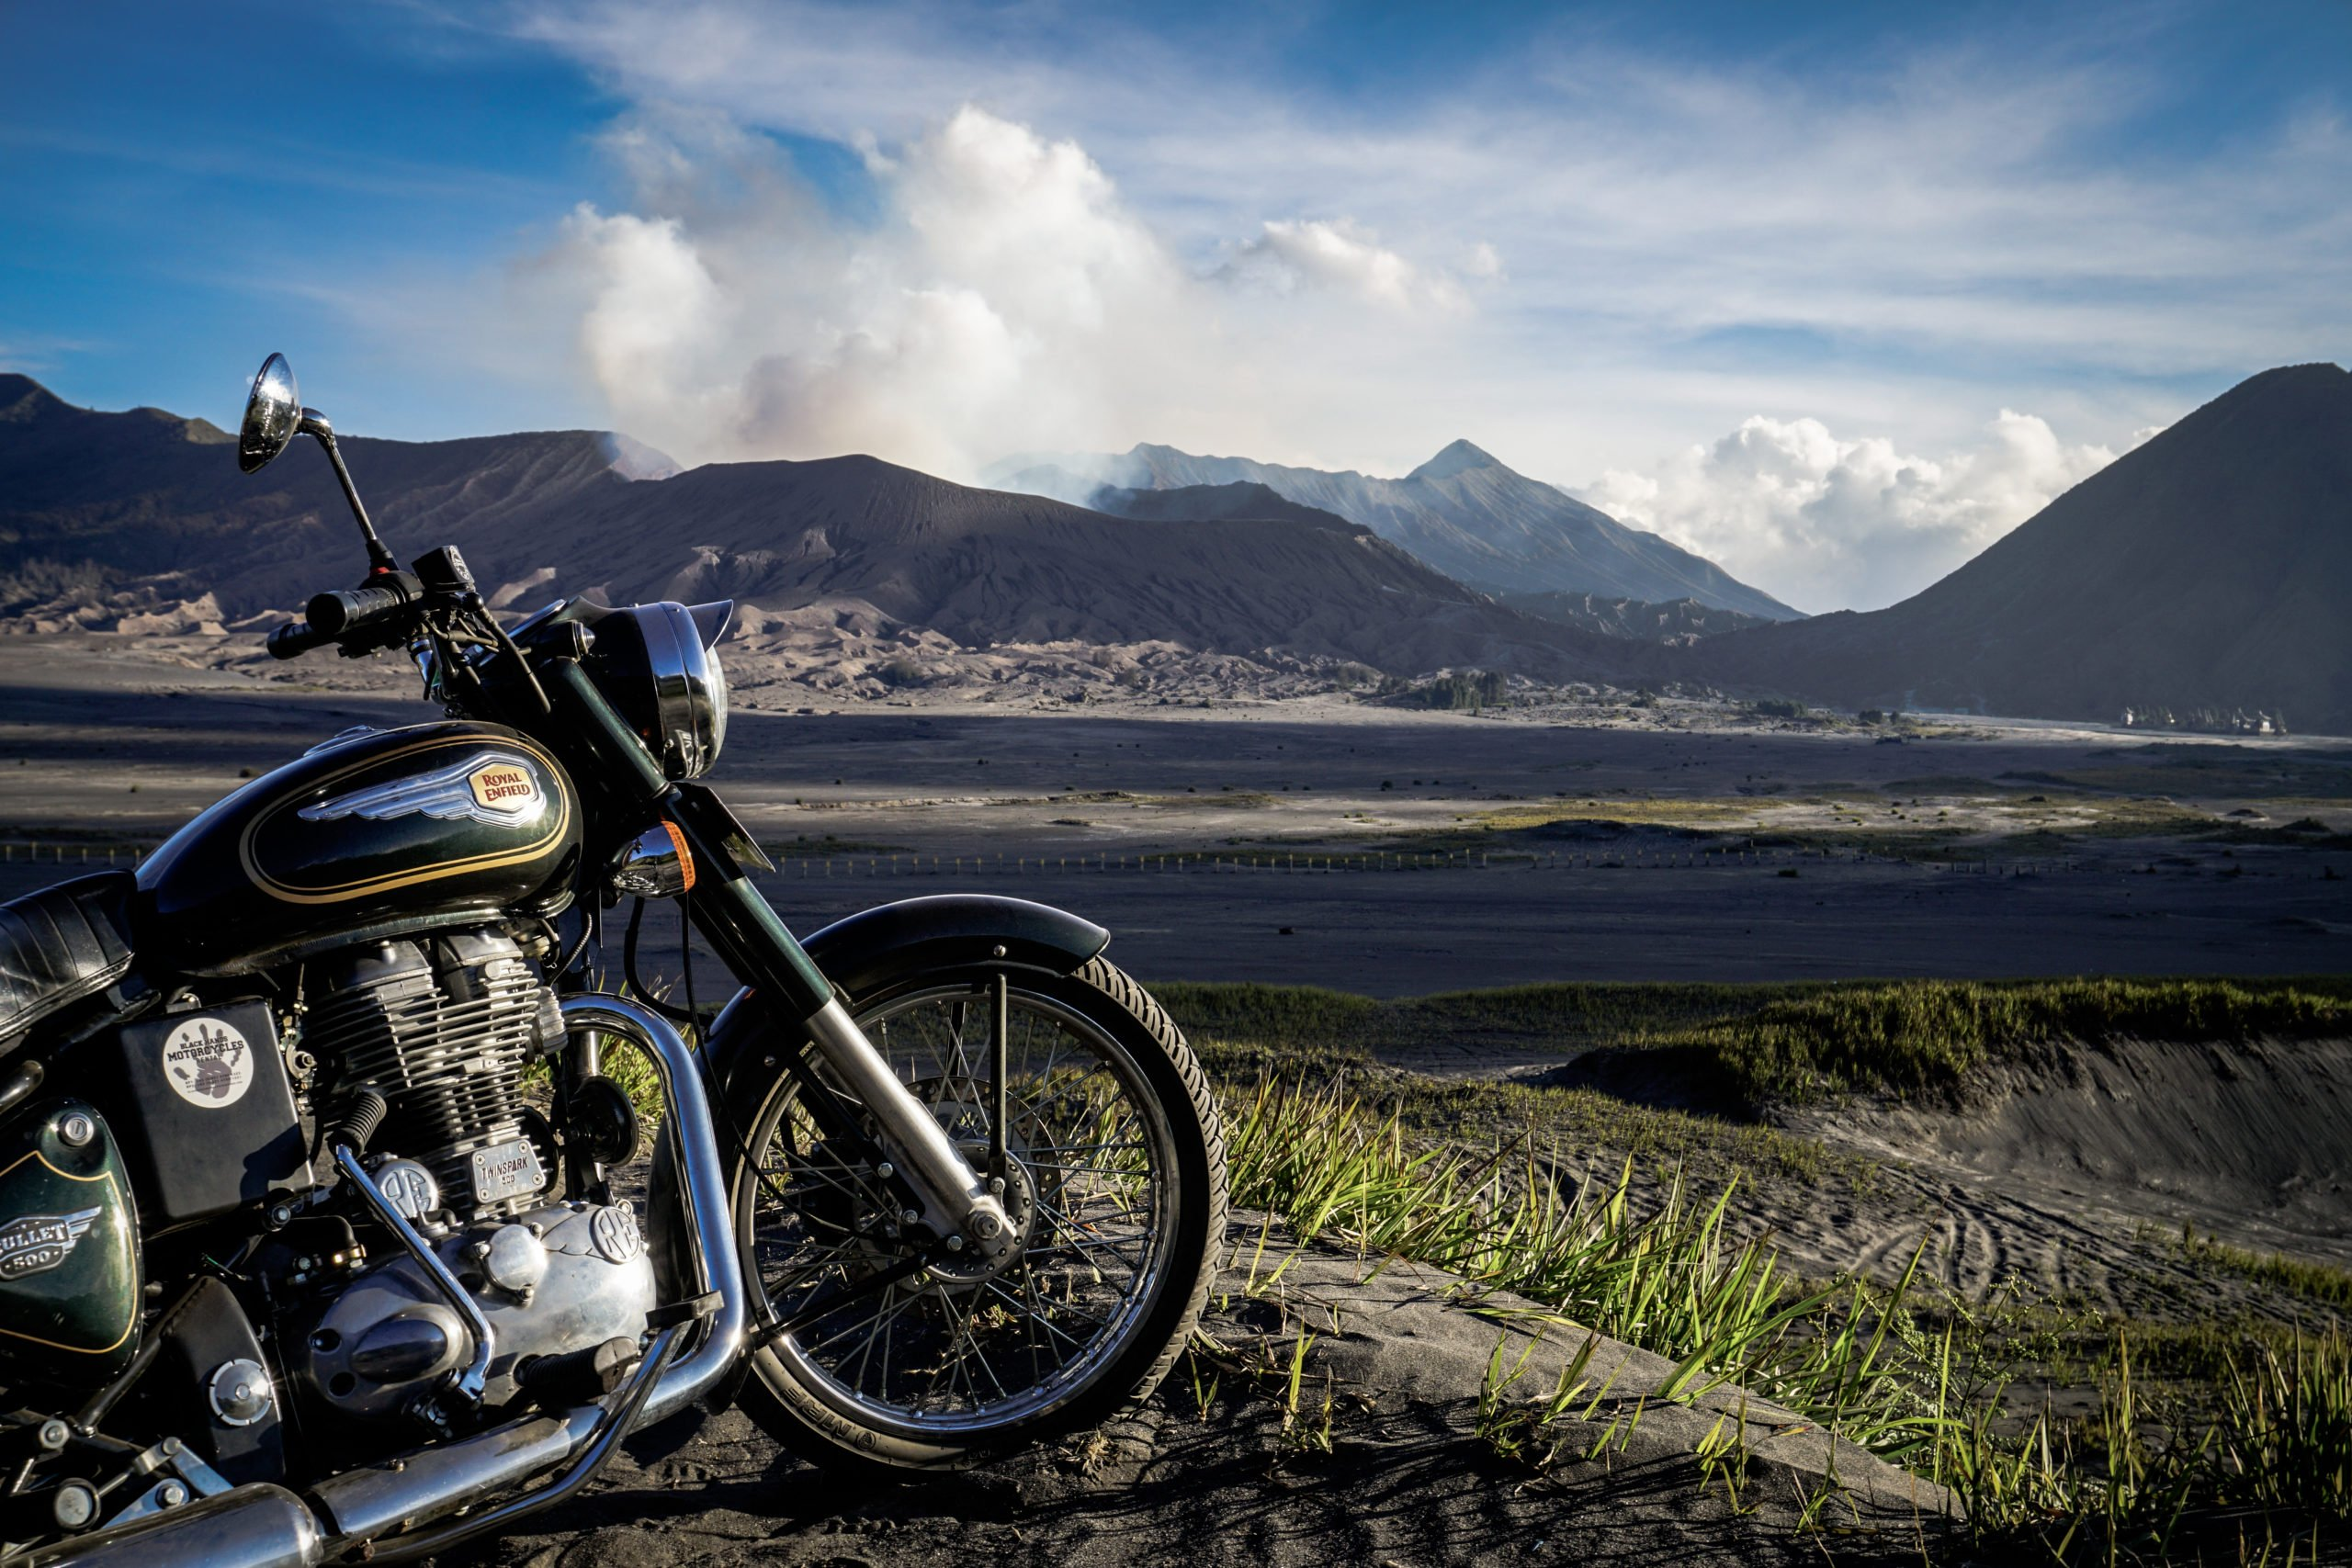 Motorcycle road trip Indonesia - From Bali to Java on the Volcanoes Trail